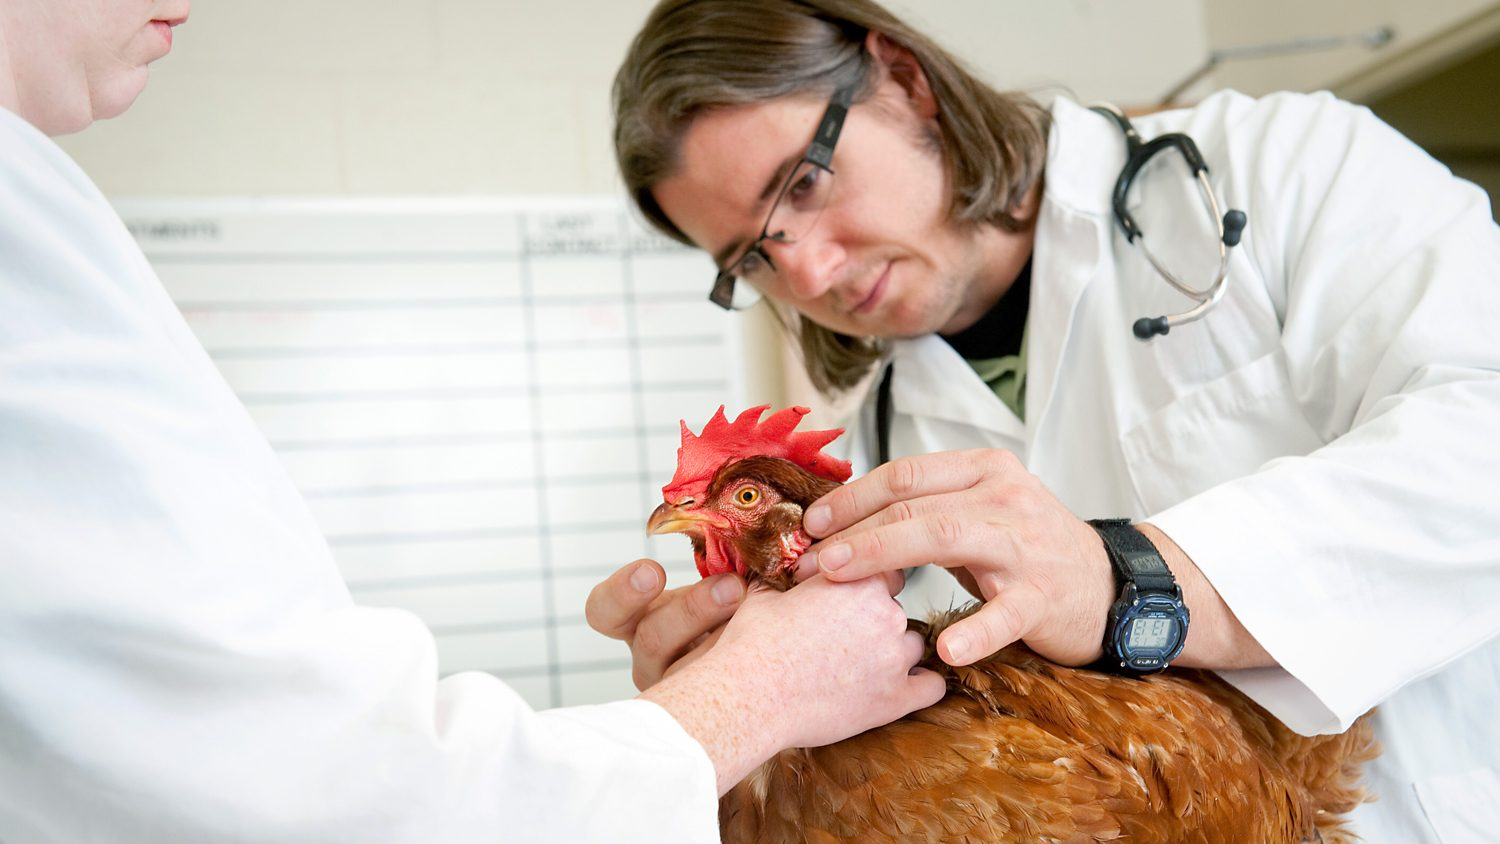 Veterinarians examine a chicken.